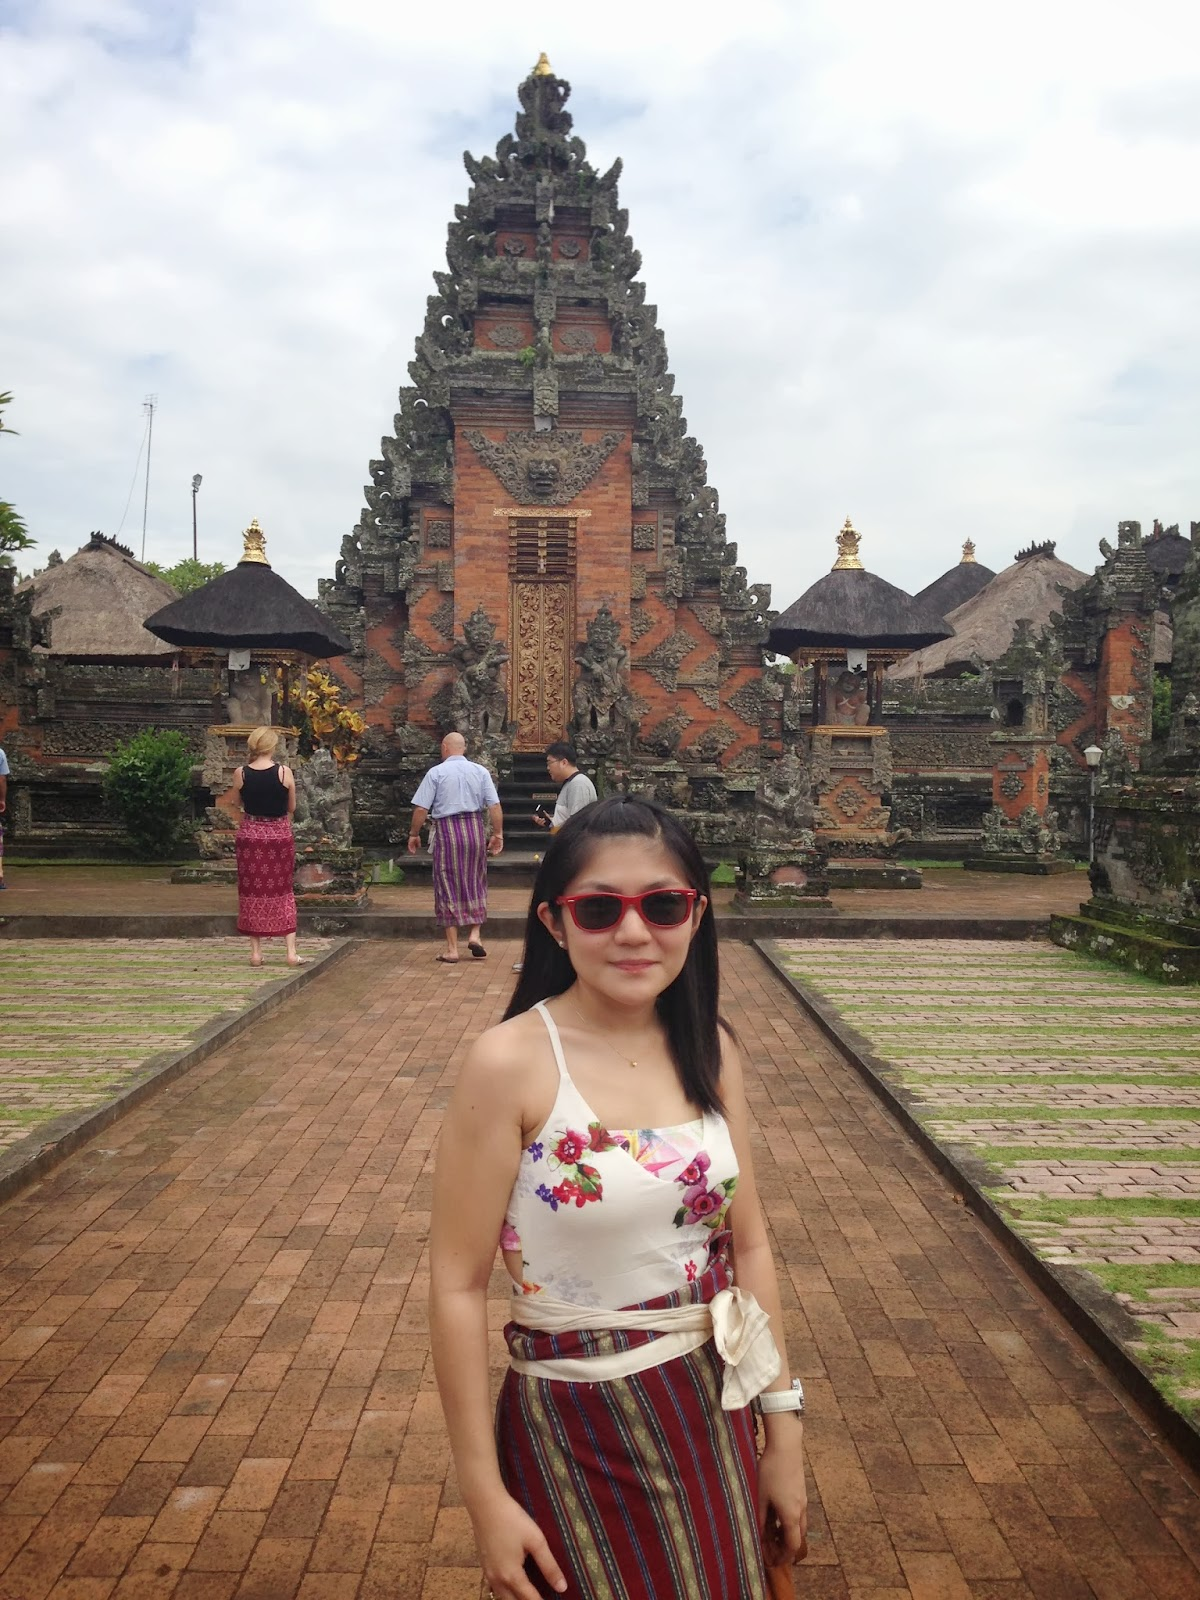 Here are some pictures that we took at Batuan Temple: